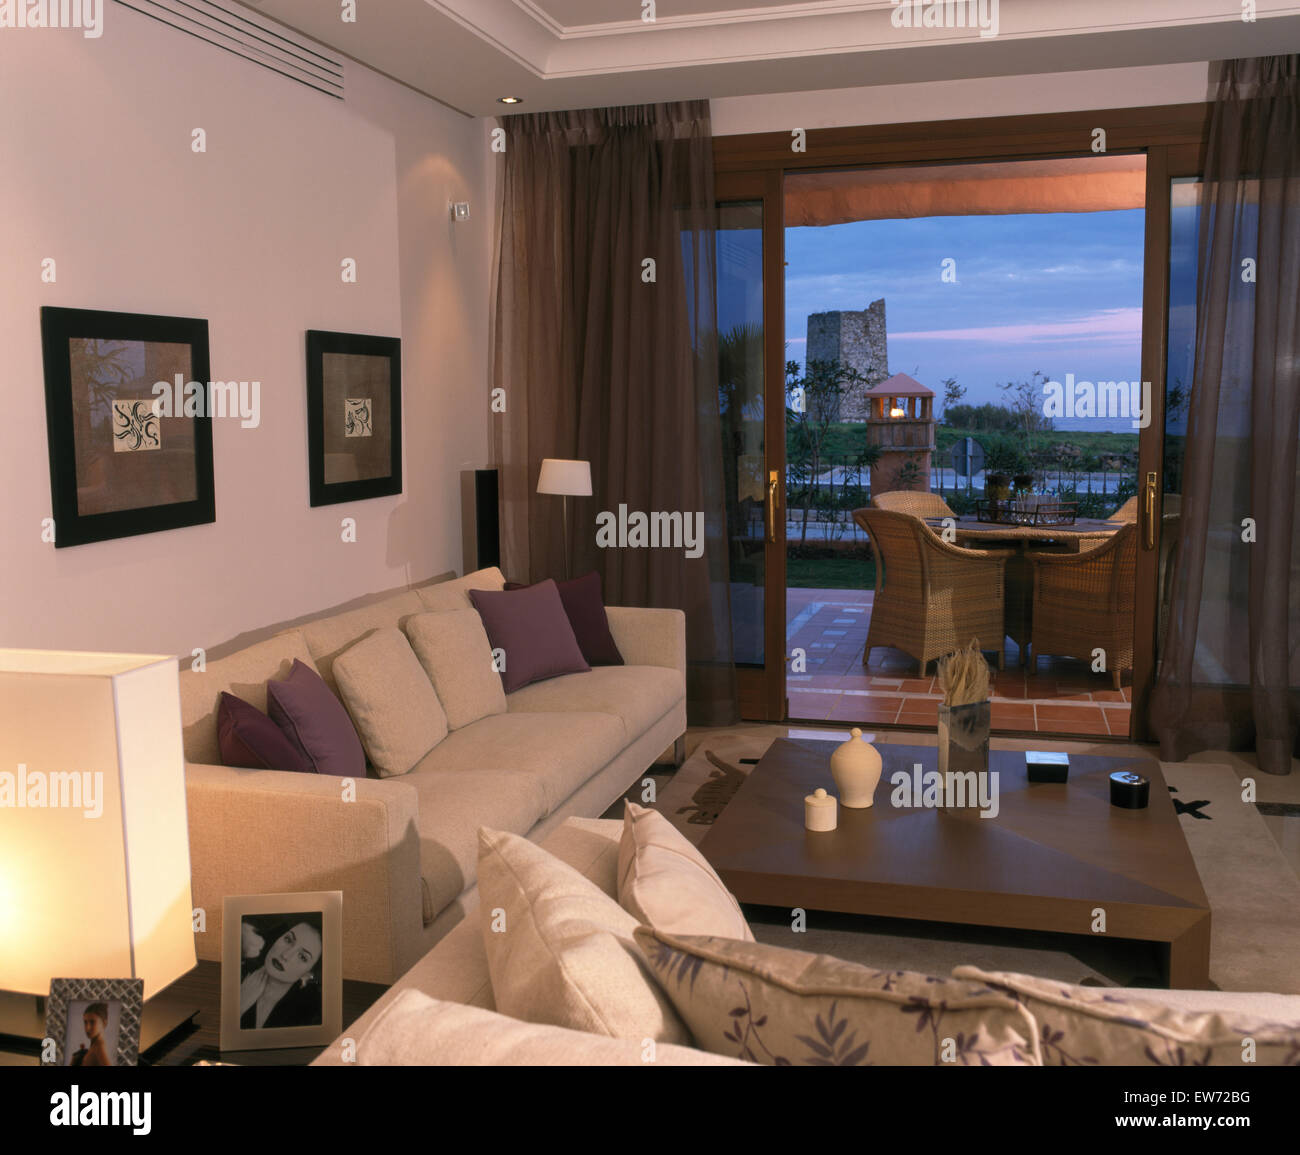 White Sofas In Spanish Living Room With Brown Voile Drapes